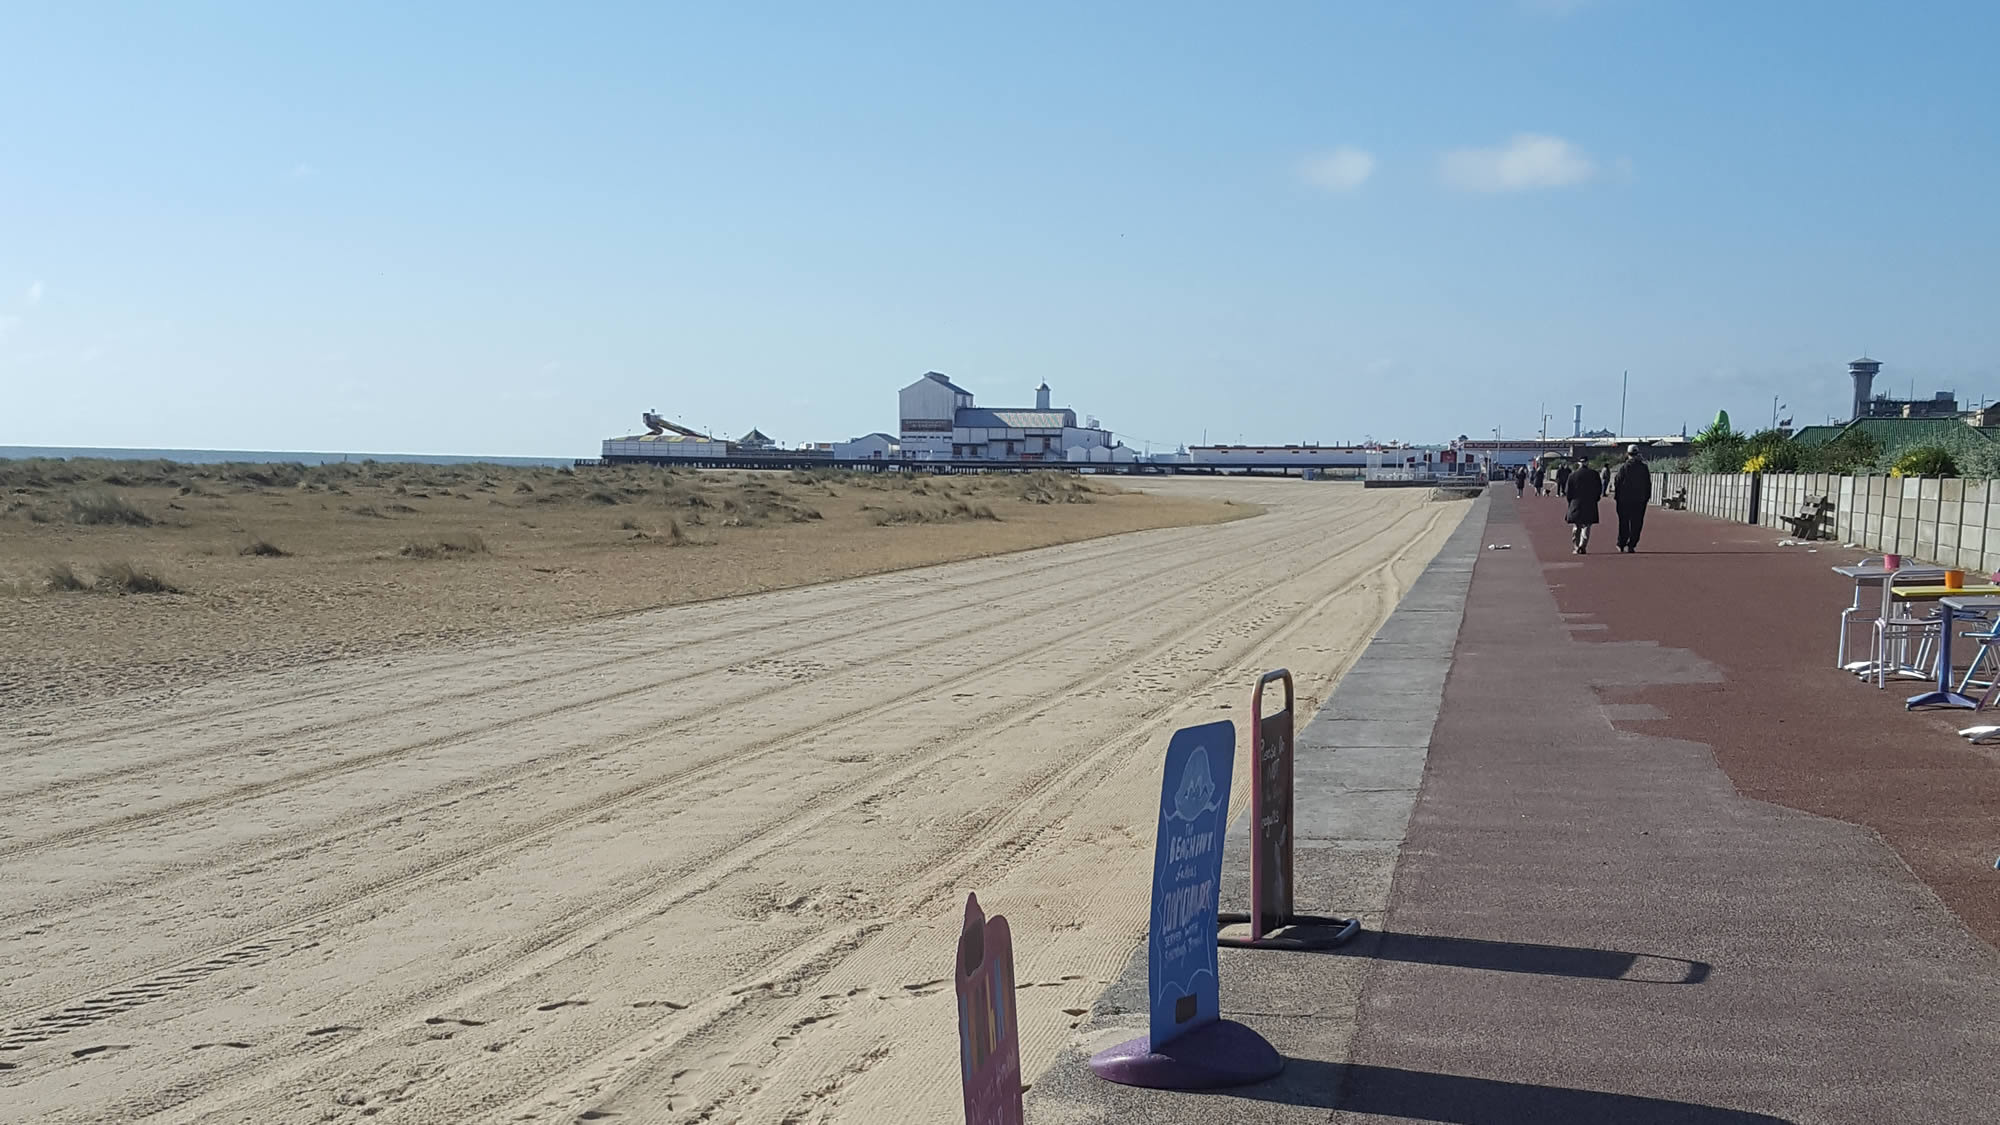 Great Yarmouth sea front and pier - North Norfolk Coastal Path